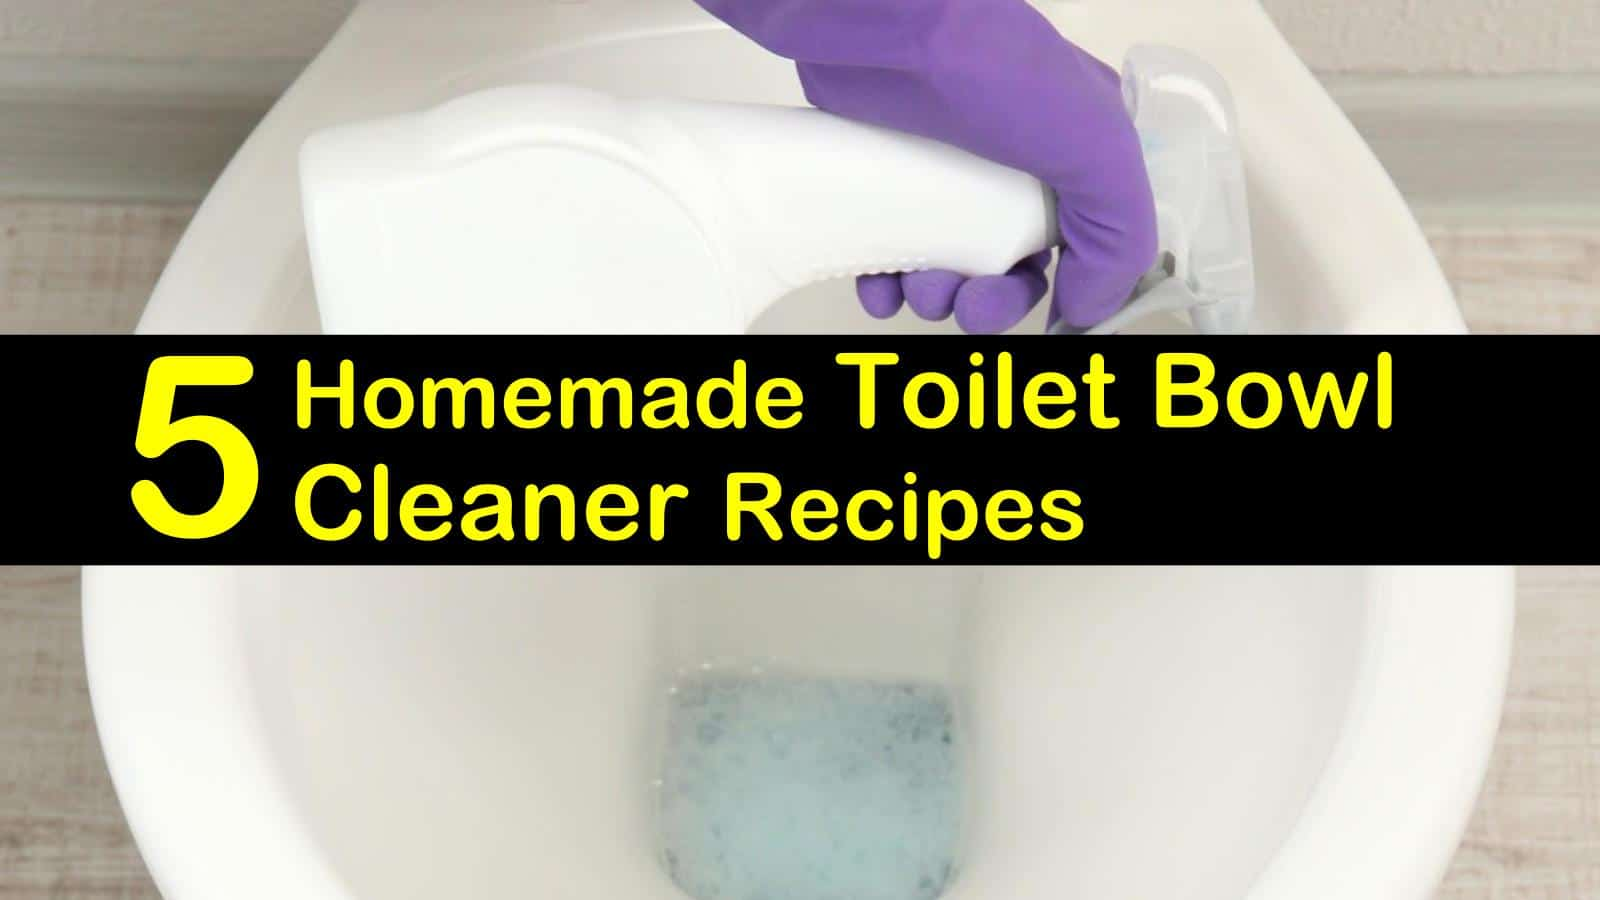 homemade toilet bowl cleaner titlimg